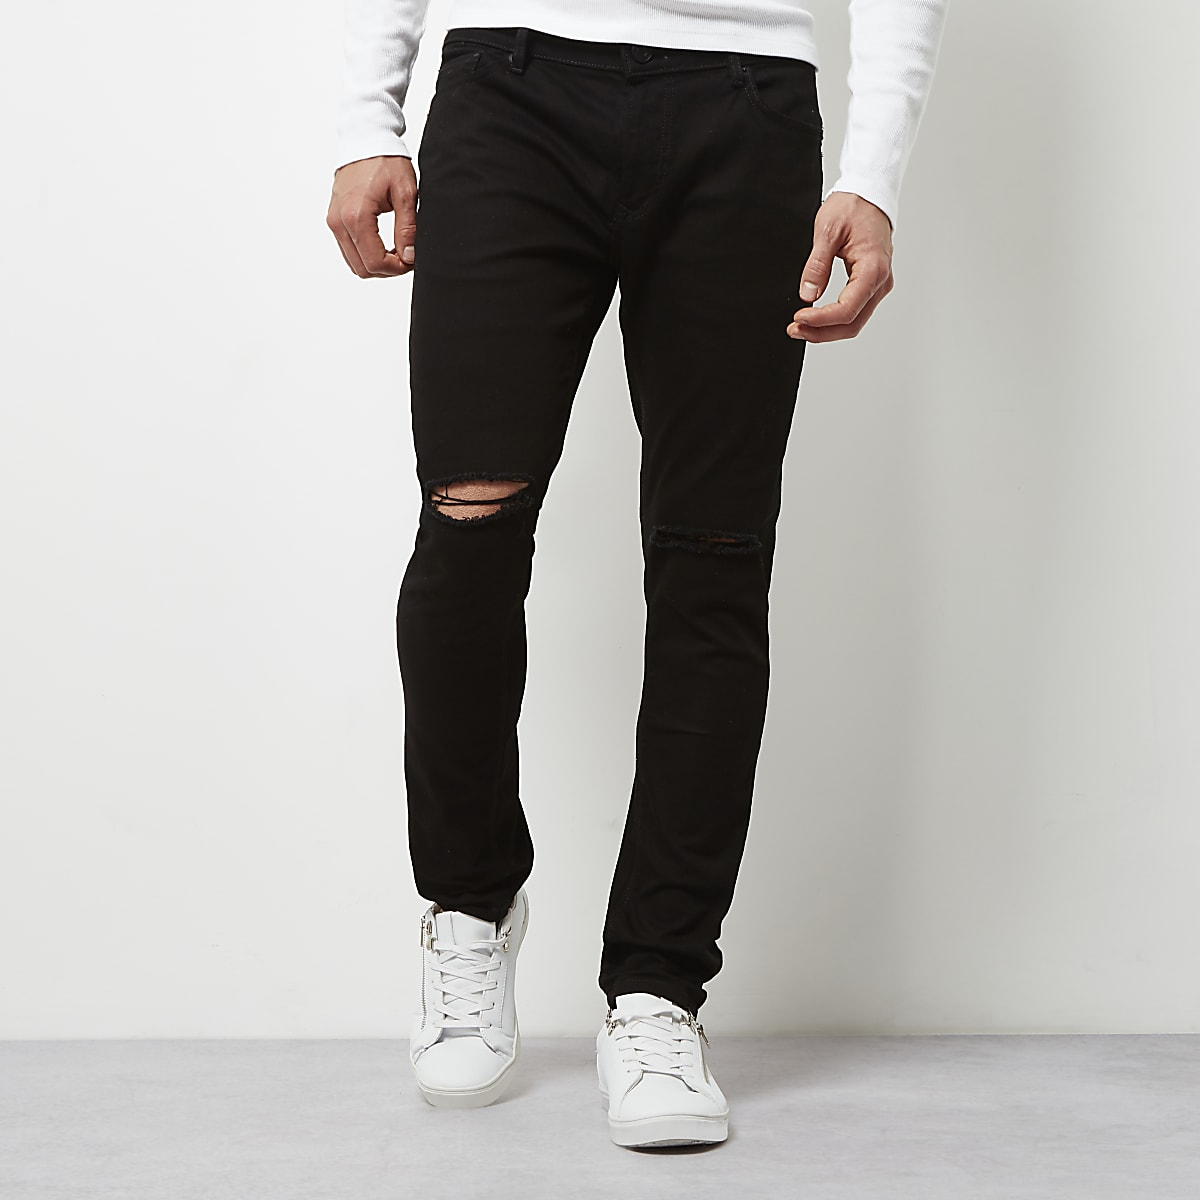 d6f33ebe76 Black ripped Sid skinny jeans - Skinny Jeans - Jeans - men